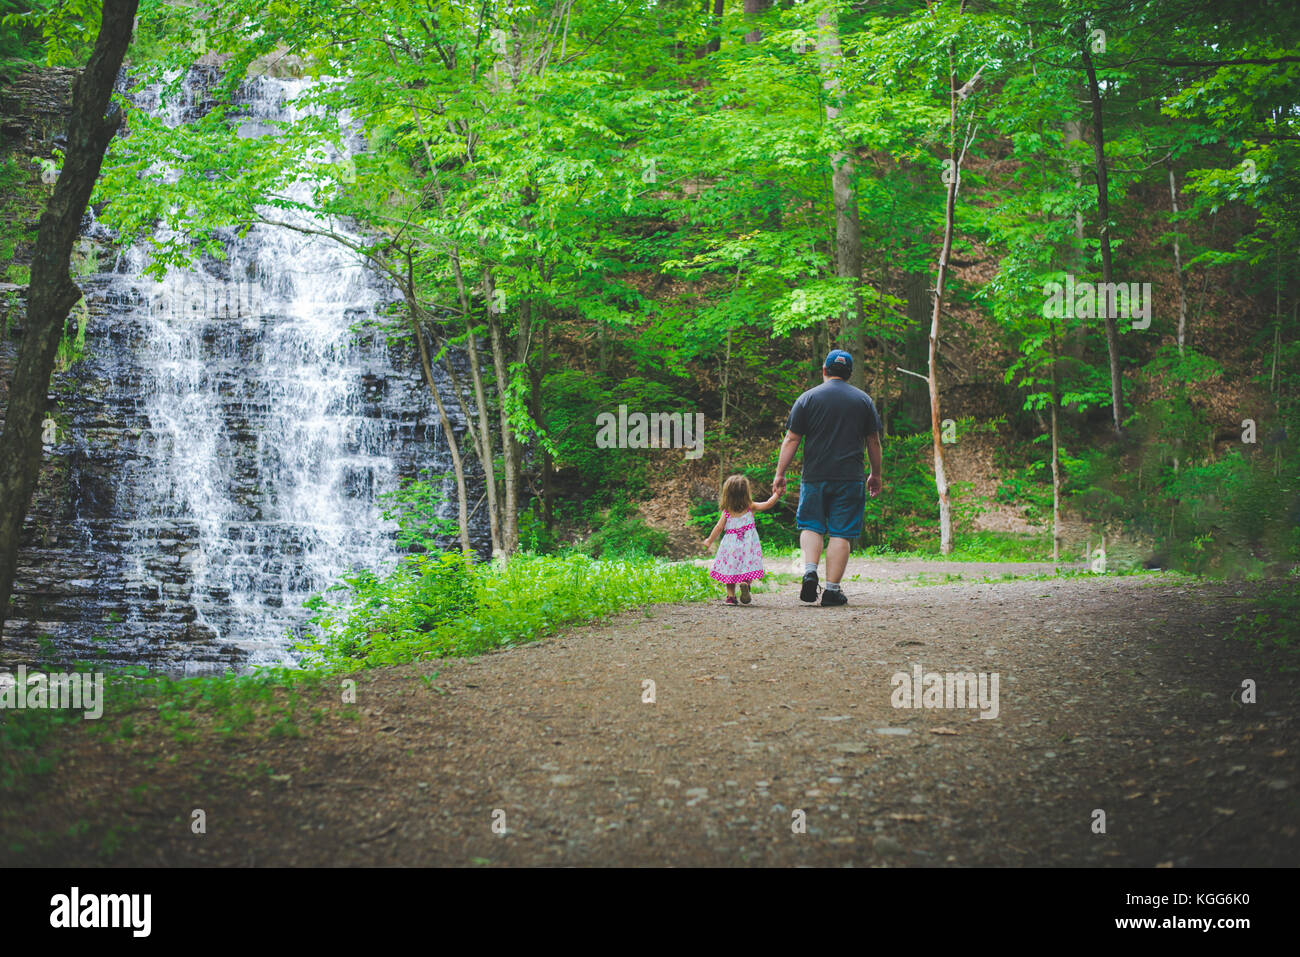 A child walks hand in hand with her father along a wooden path Stock Photo